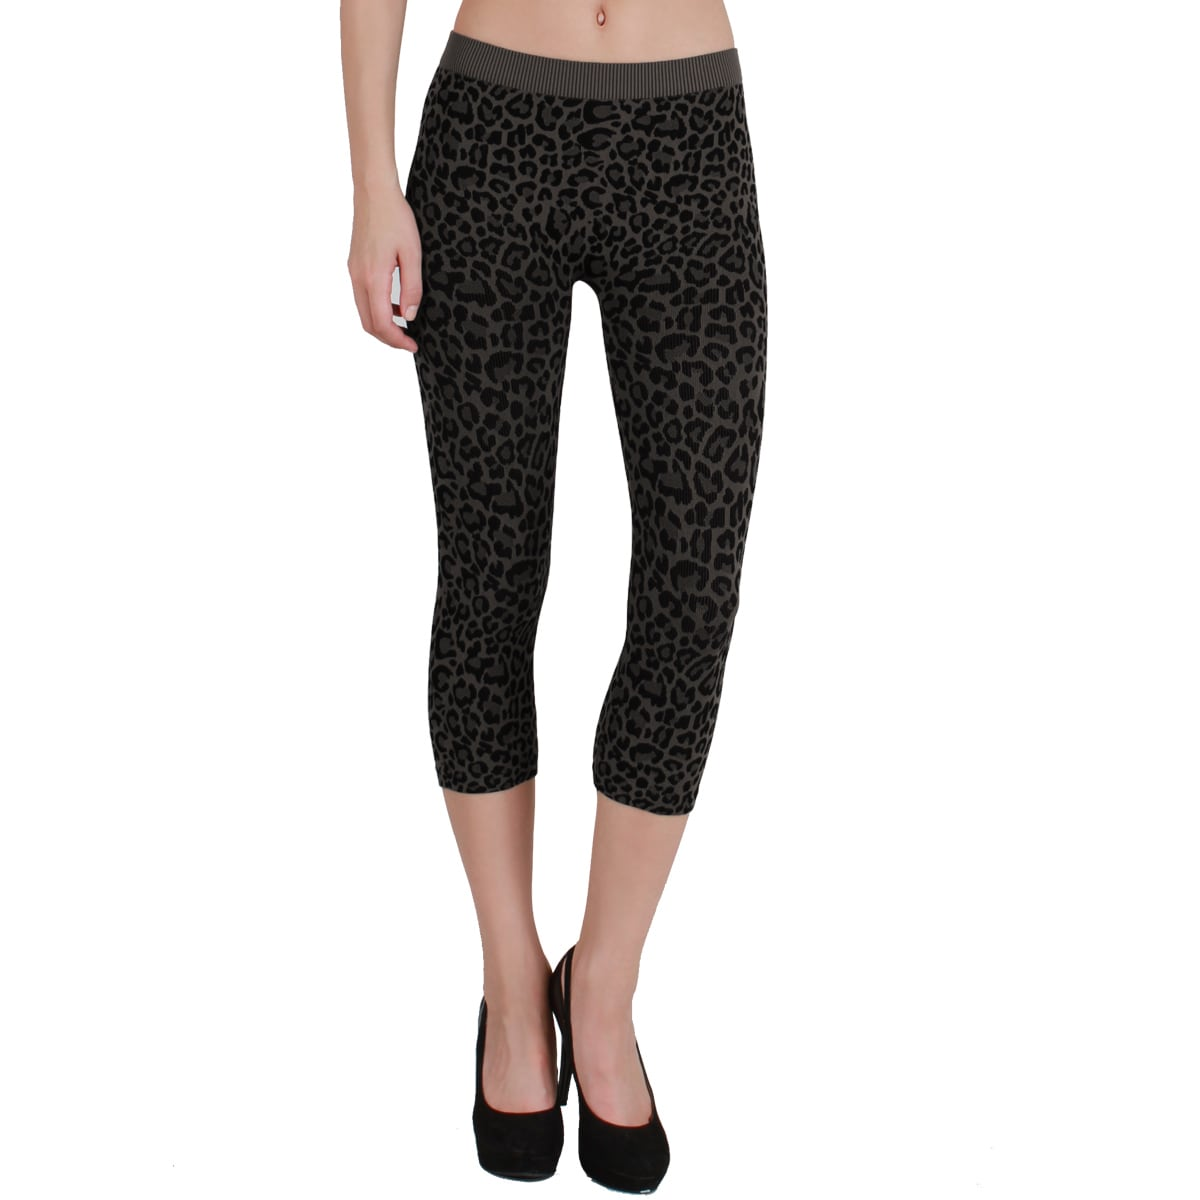 c2140329a1fdb1 Shop Nikibiki Women's Vivid Leopard Capri Leggings - Free Shipping On  Orders Over $45 - Overstock - 9752994